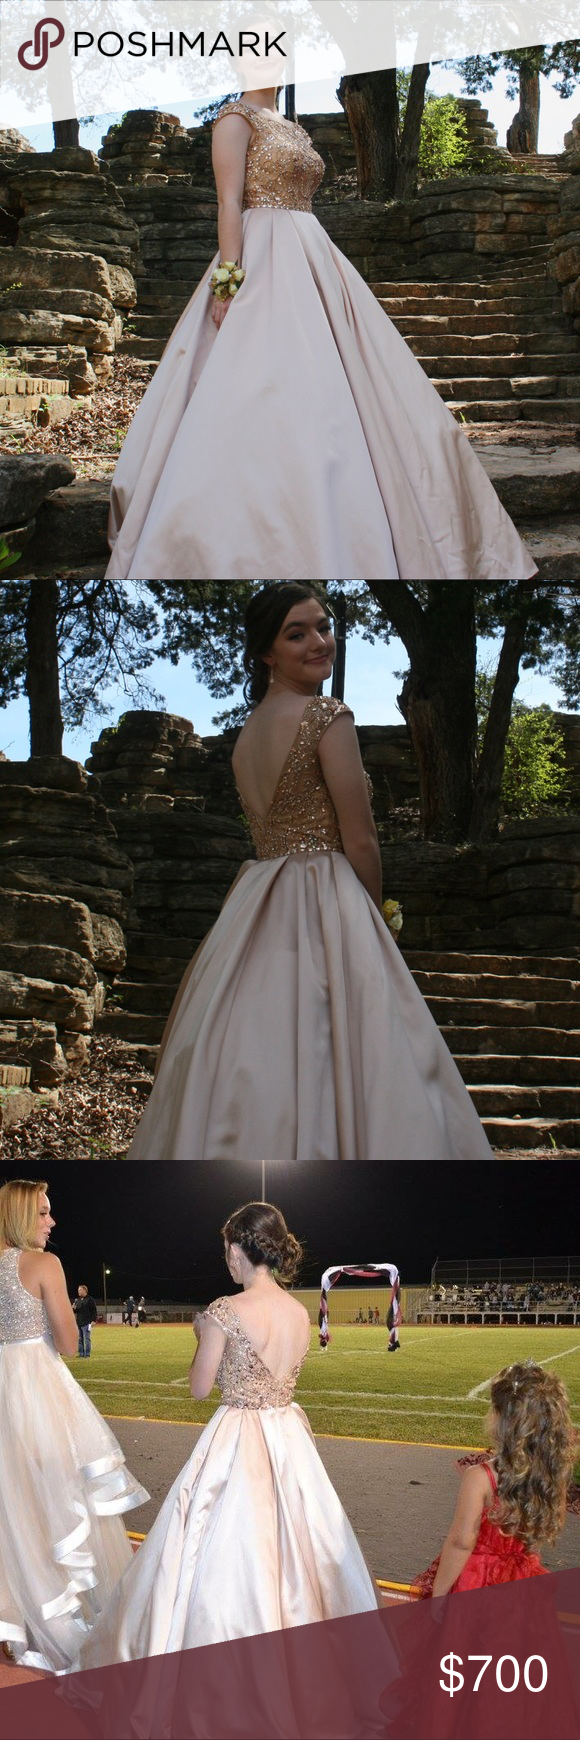 Sherri hill prom dress gorgeous champagne colored prom dress only